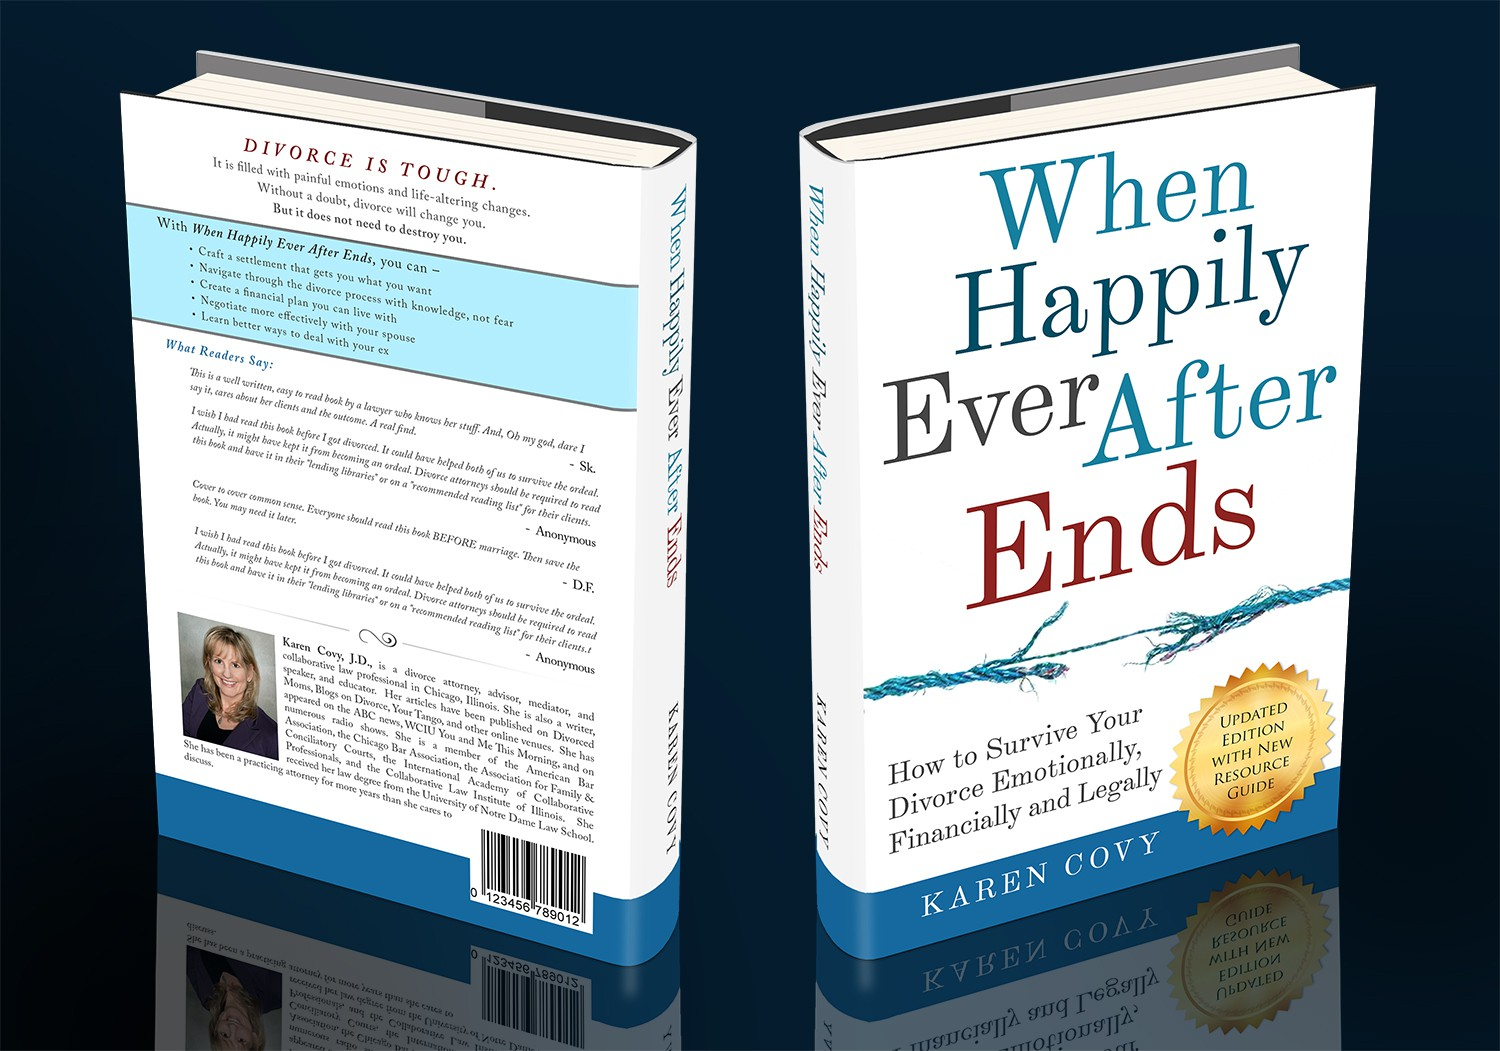 When Happily Ever After Ends: How to Survive Your Divorce Emotionally, Financially and Legally